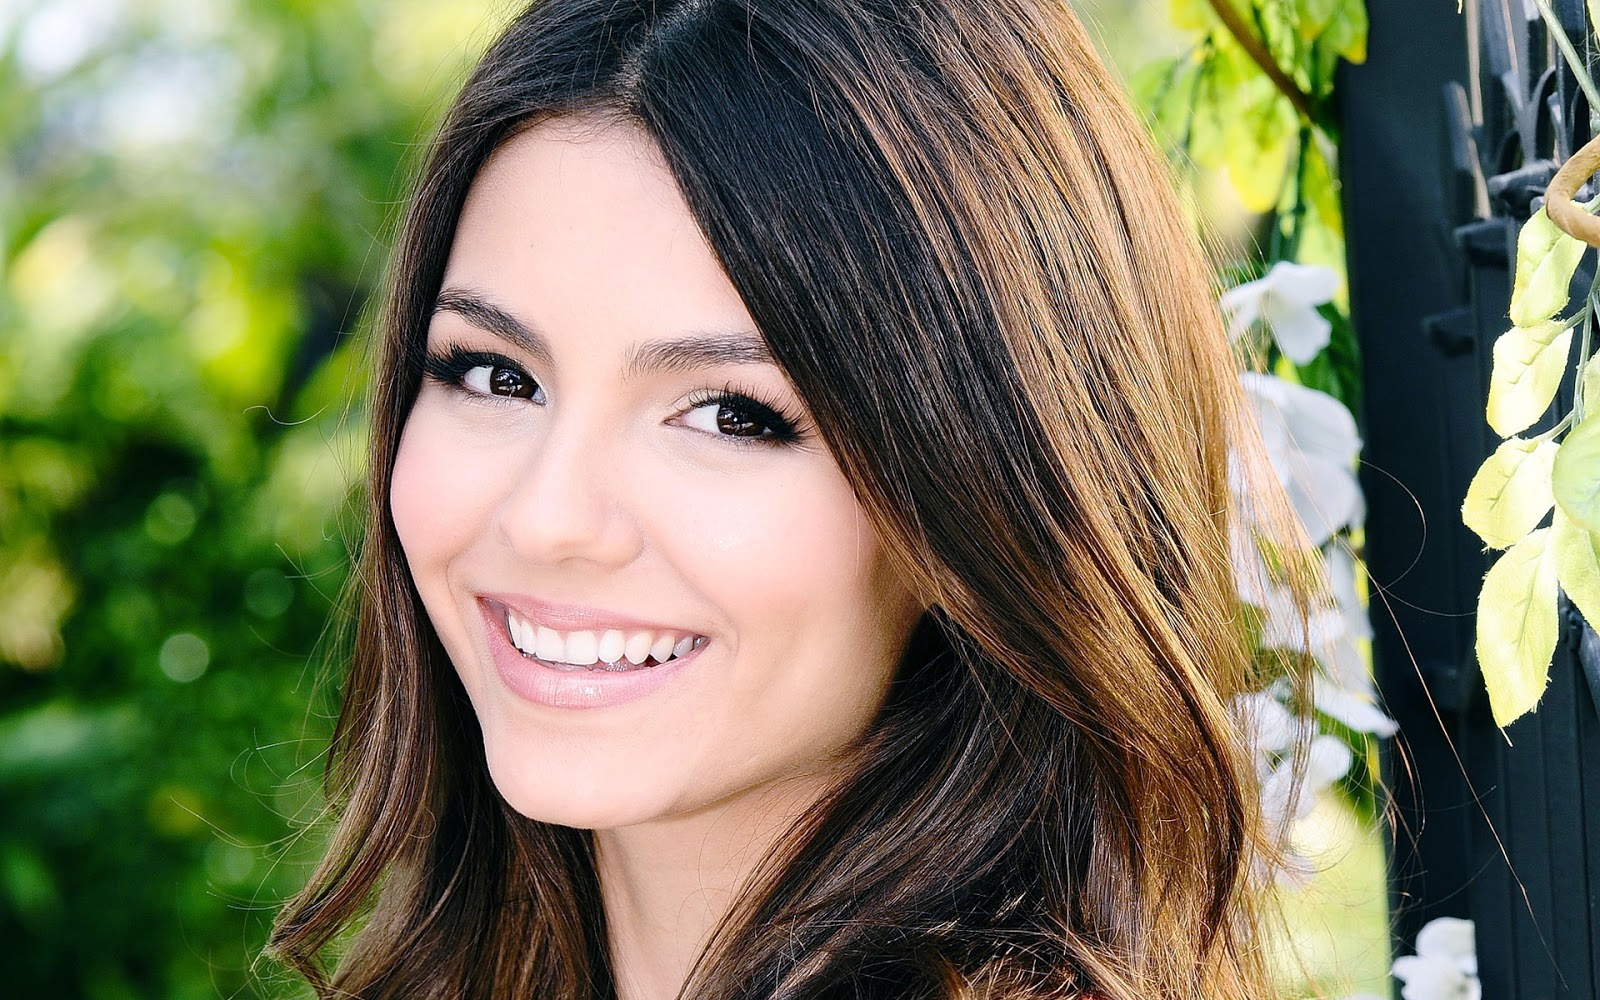 Cute Actress Wallpapers Download Victoria Justice Hd Wallpapers Hd Wallpapers